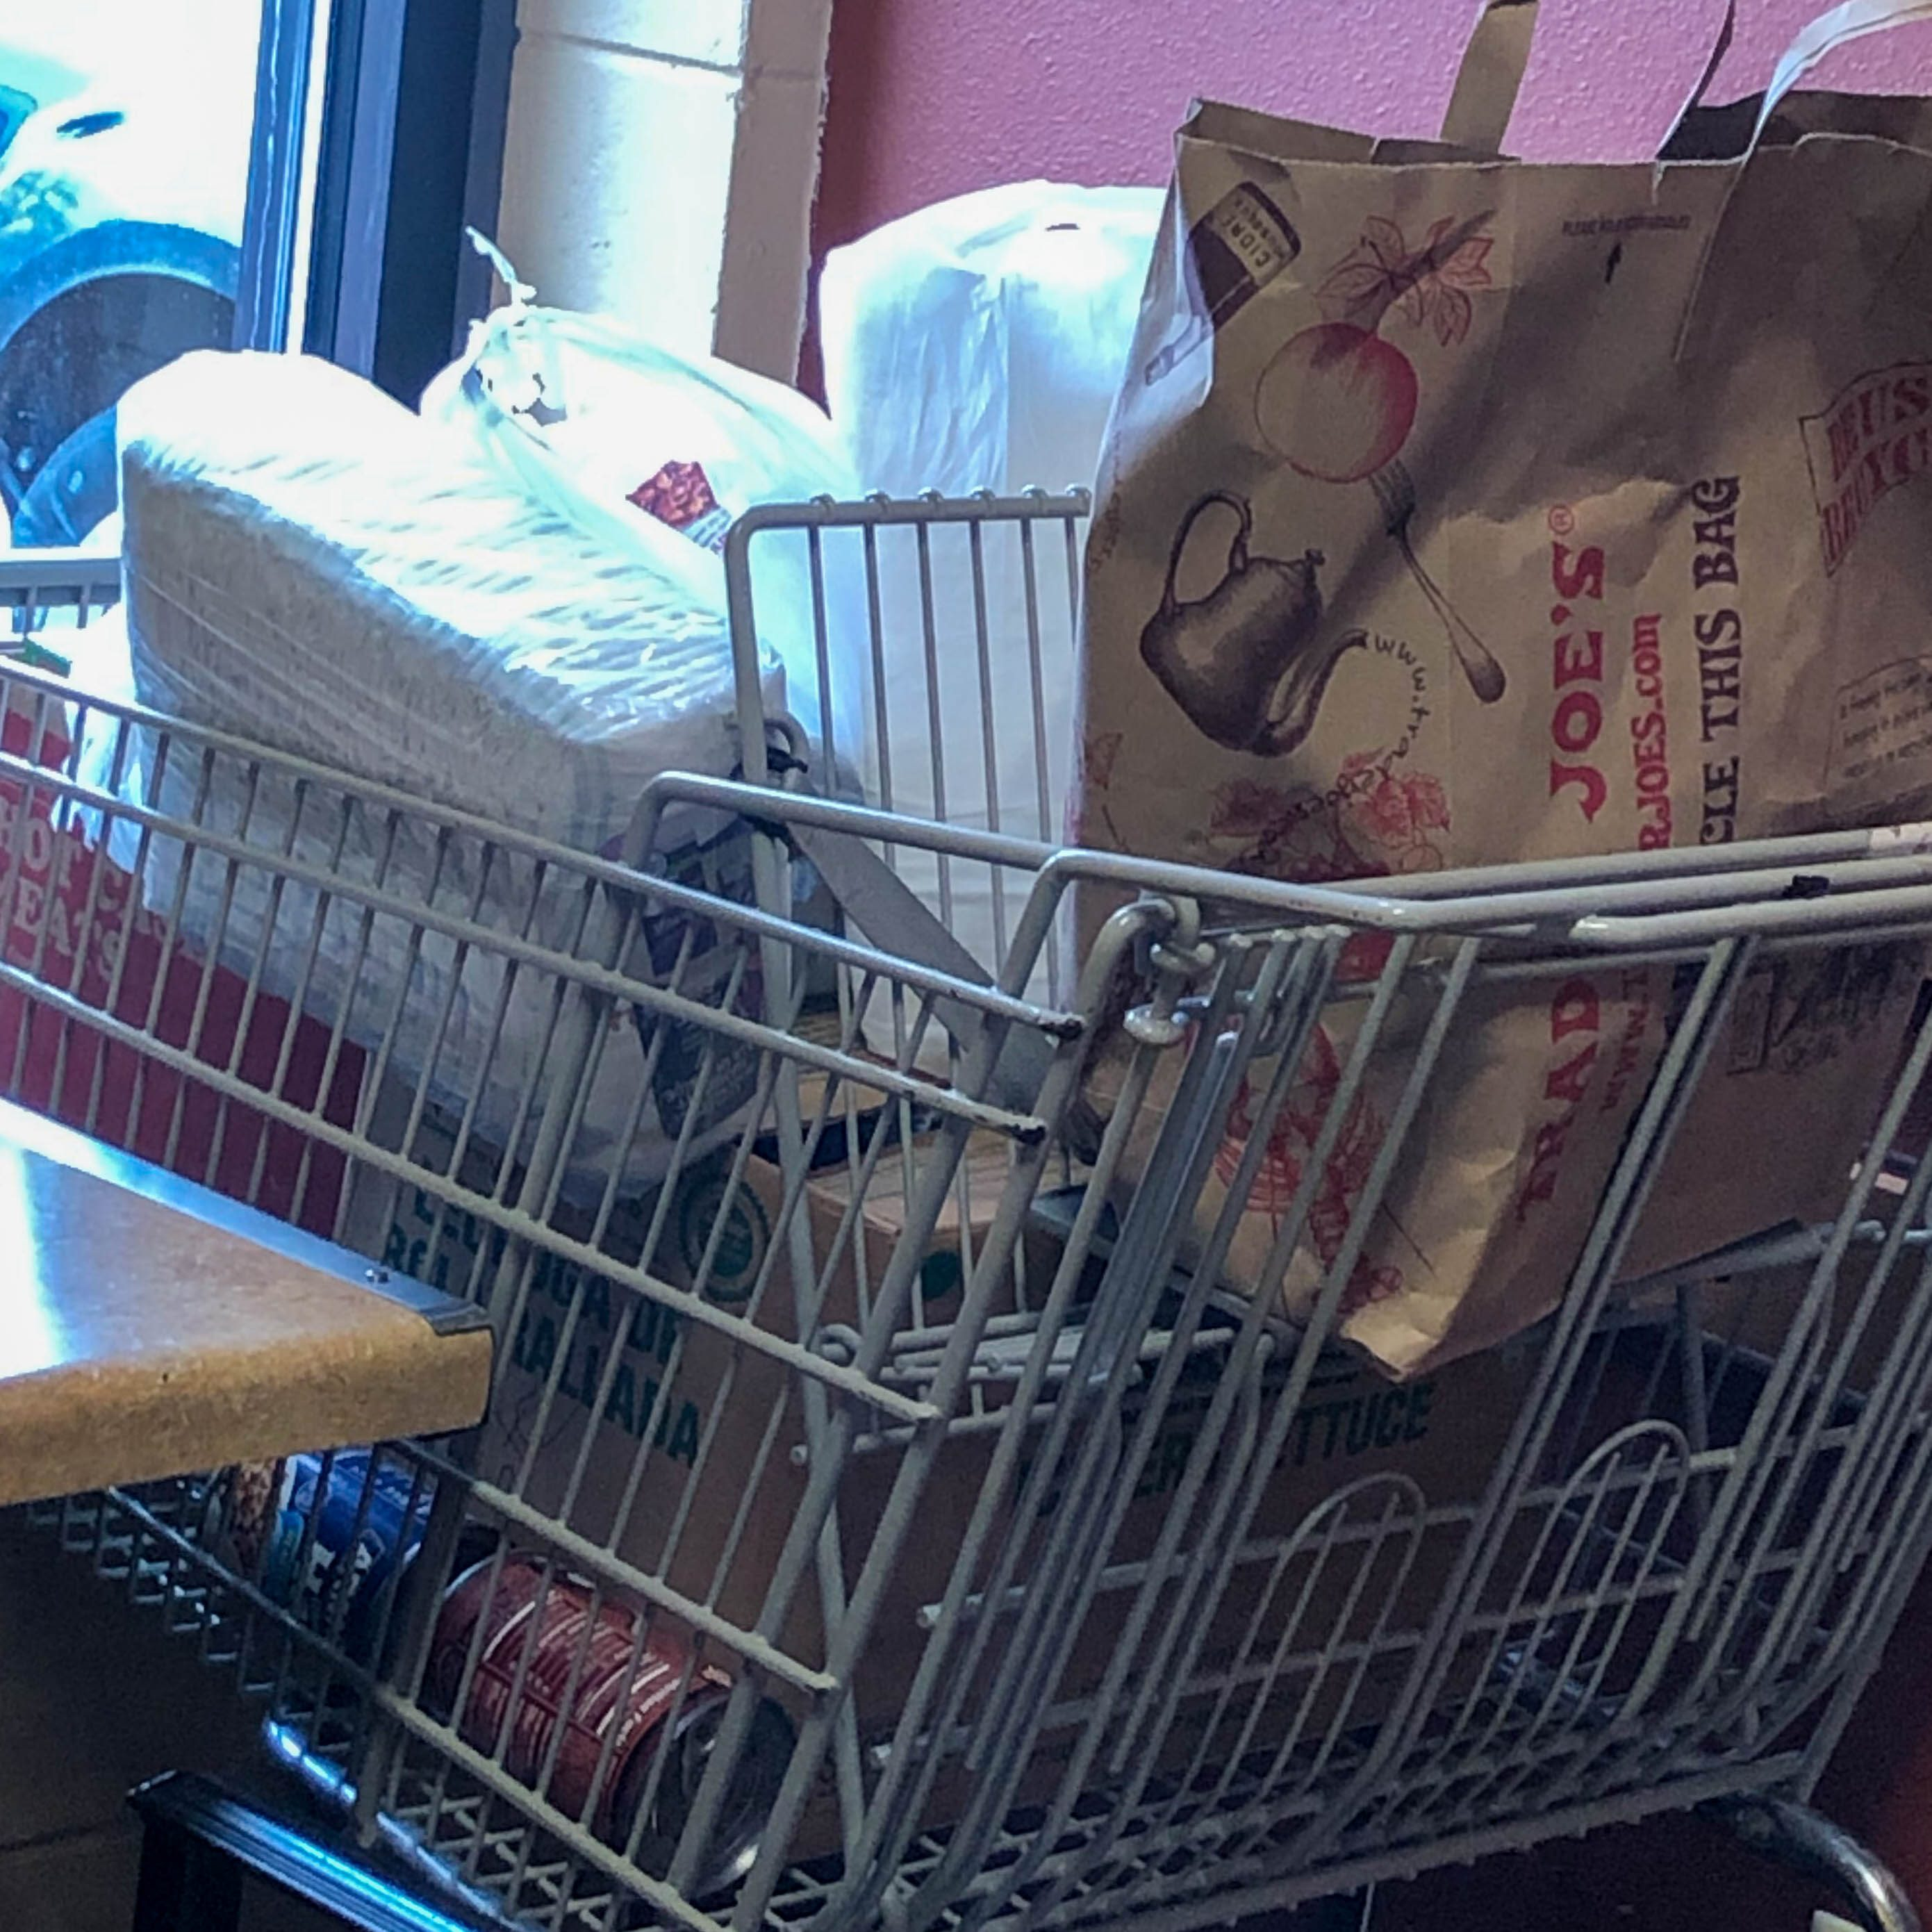 SP Food donation 2